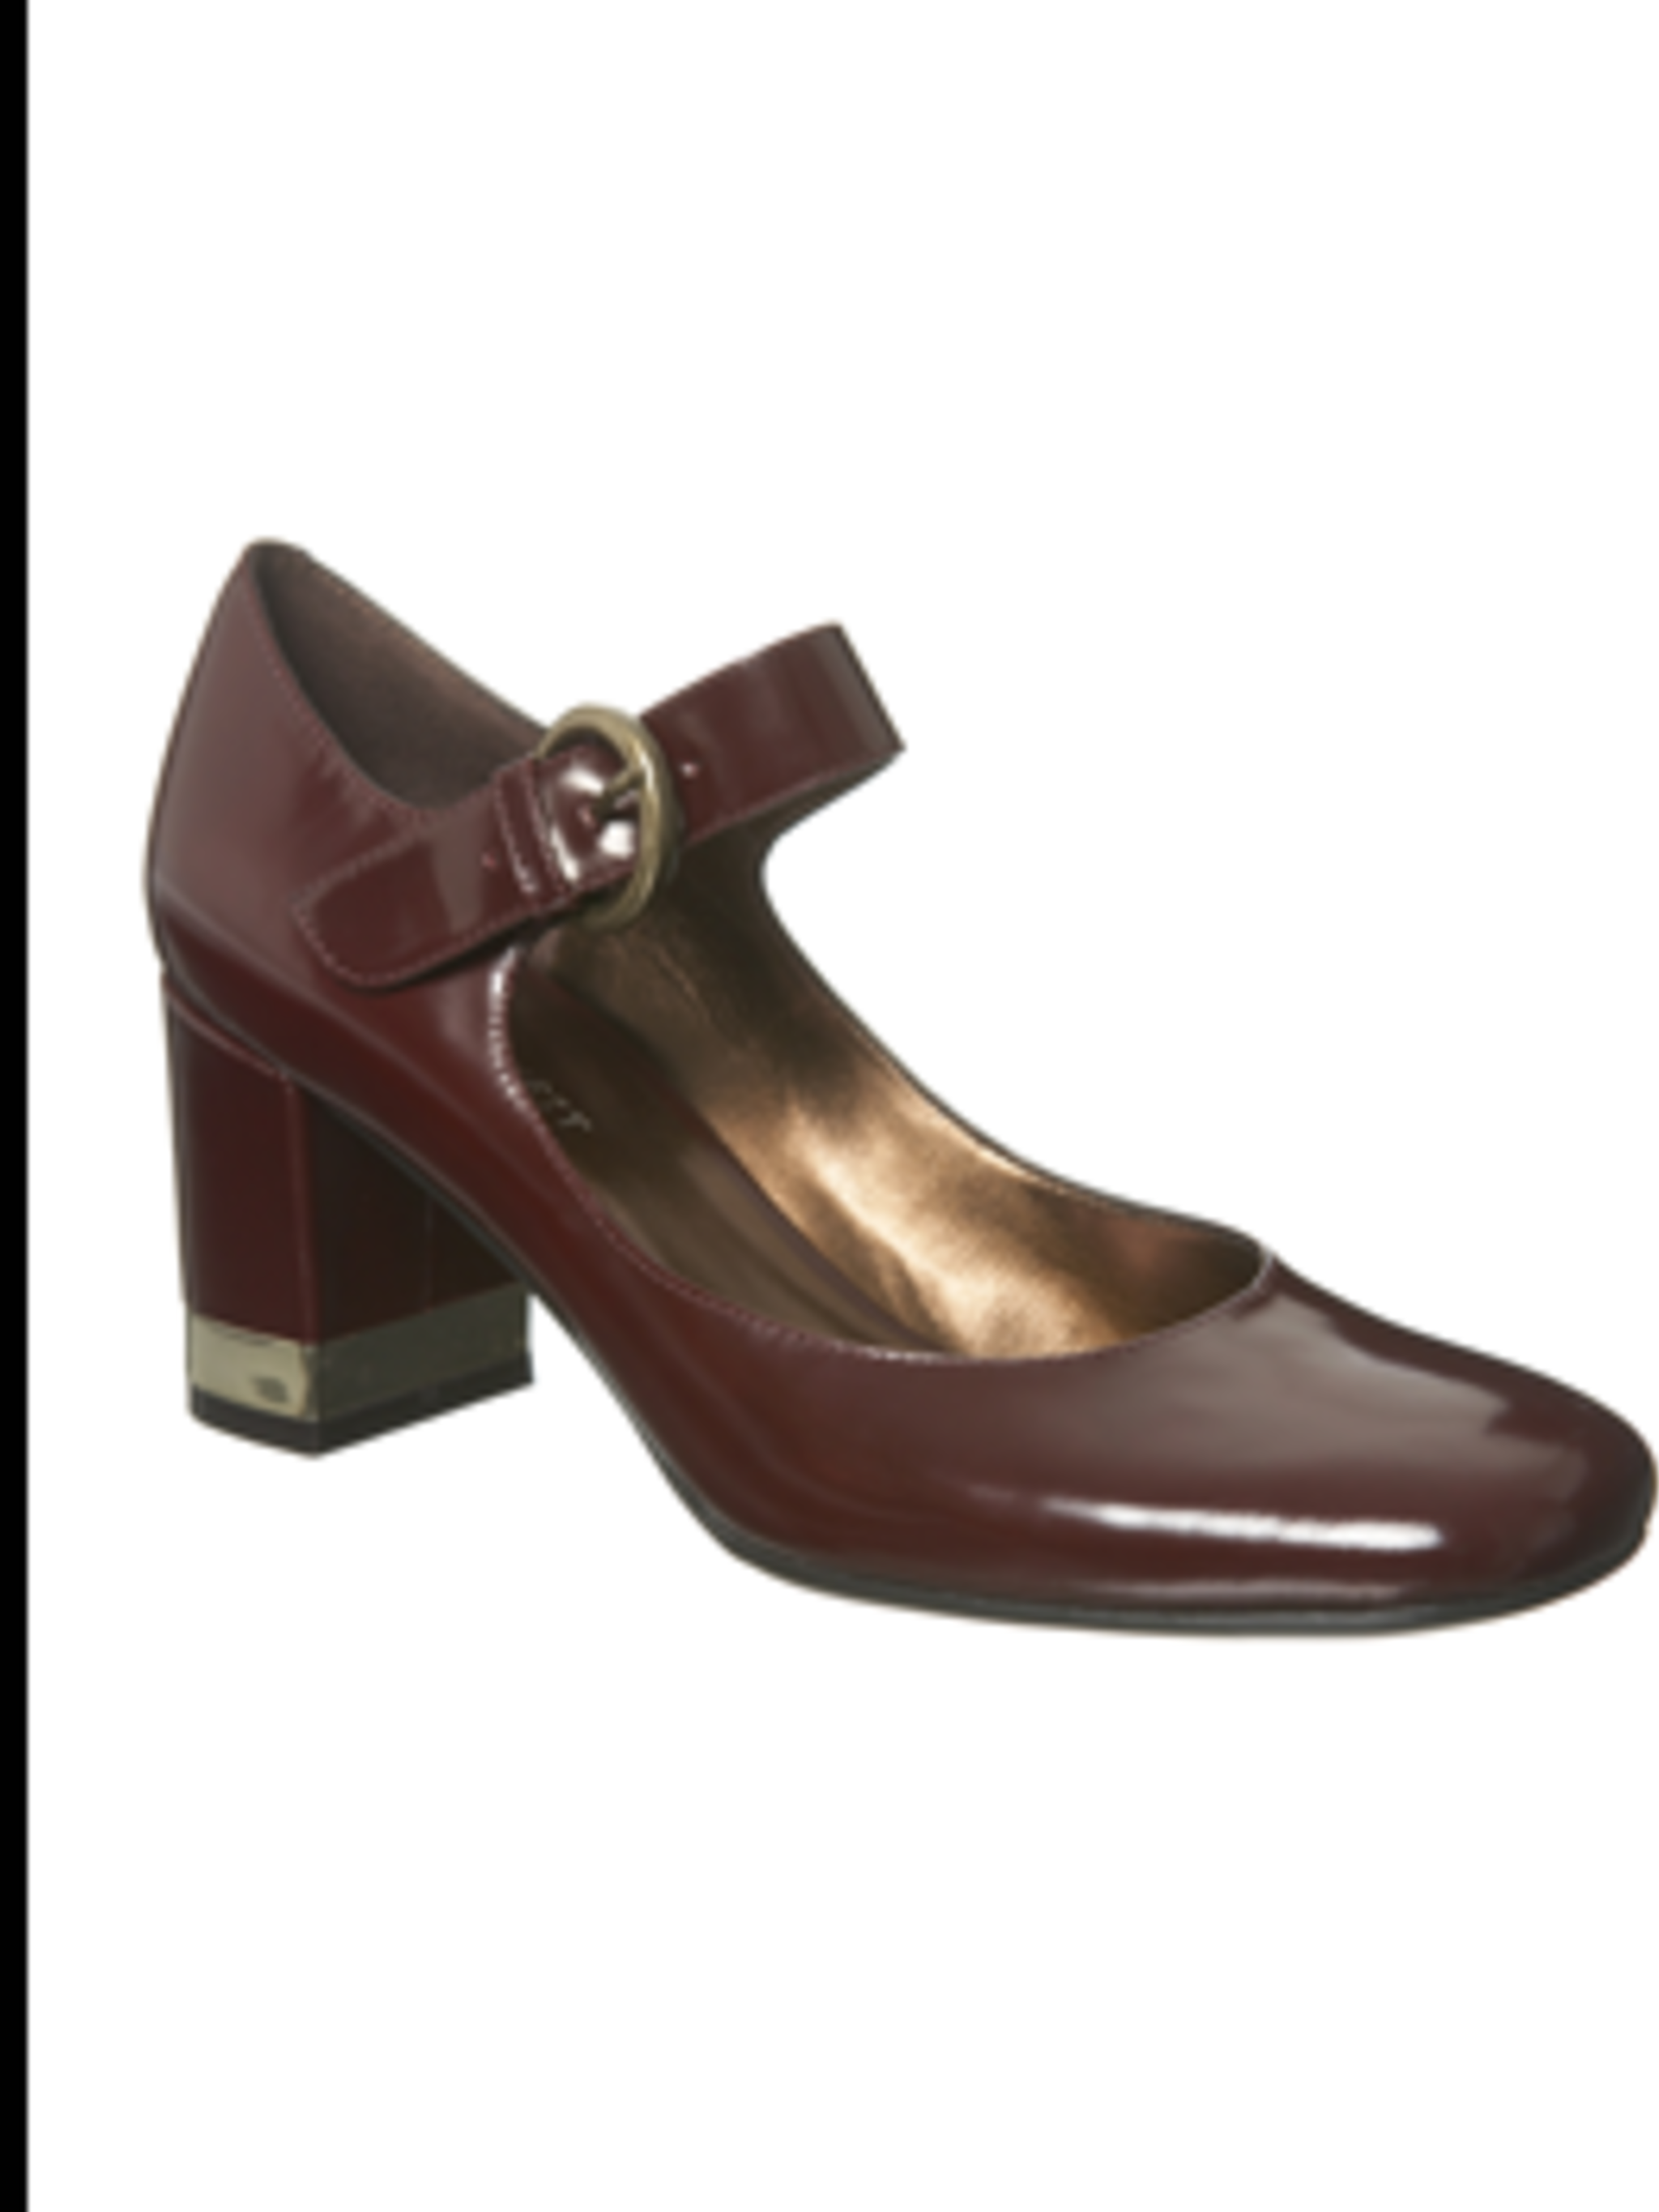 <p>Wine patent mary jane, £65 from Nine West for stockists call 020 7079 7586</p>